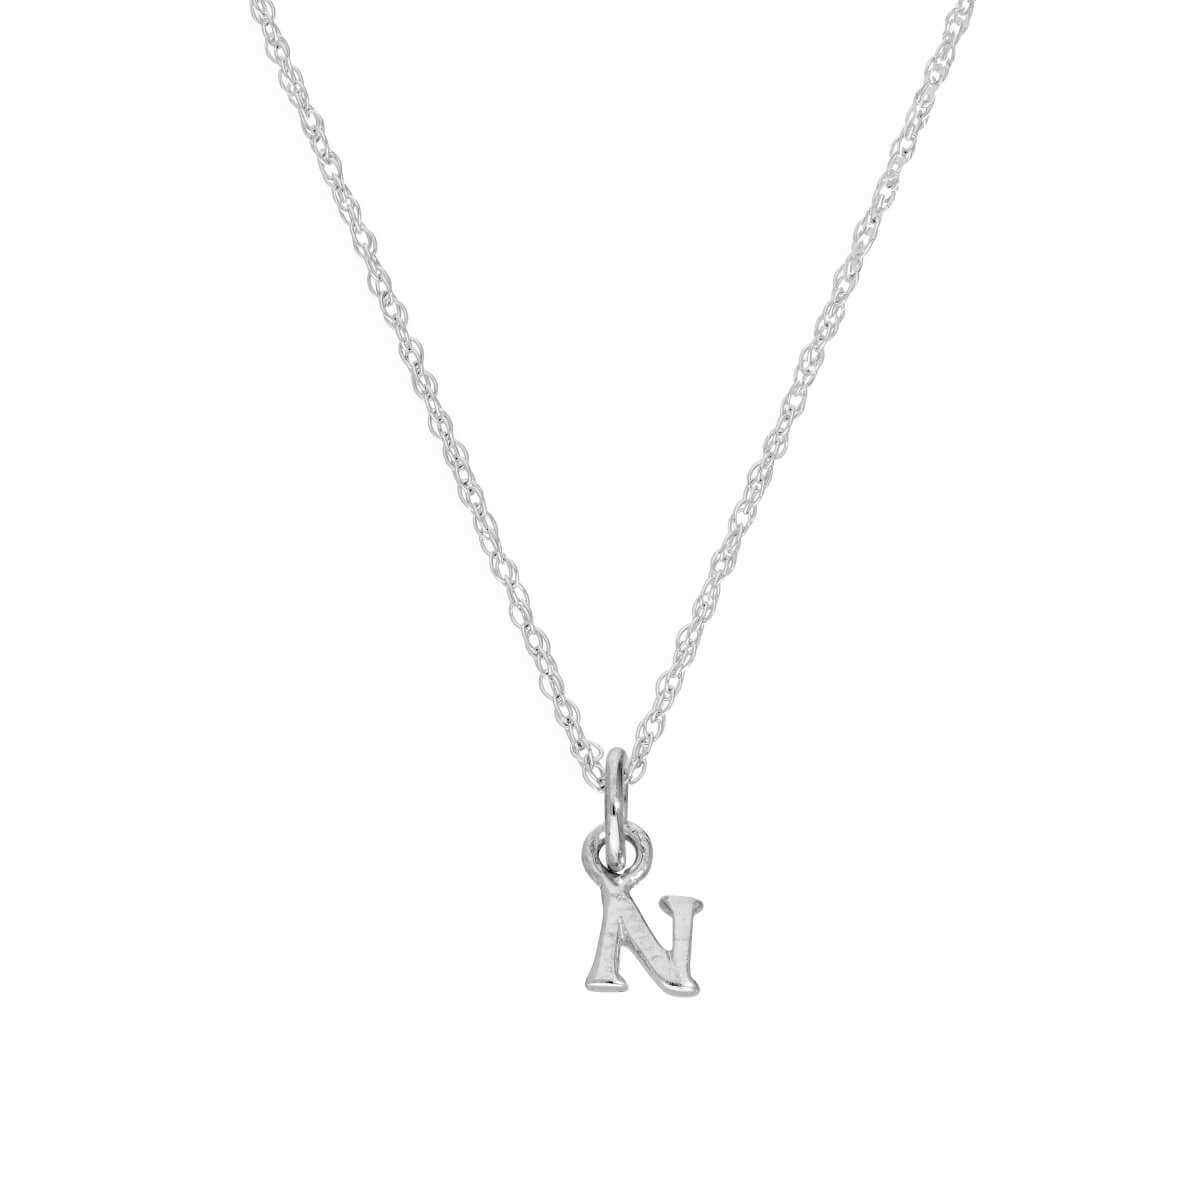 Tiny Sterling Silver Alphabet Letter N Pendant Necklace 14 - 22 Inches